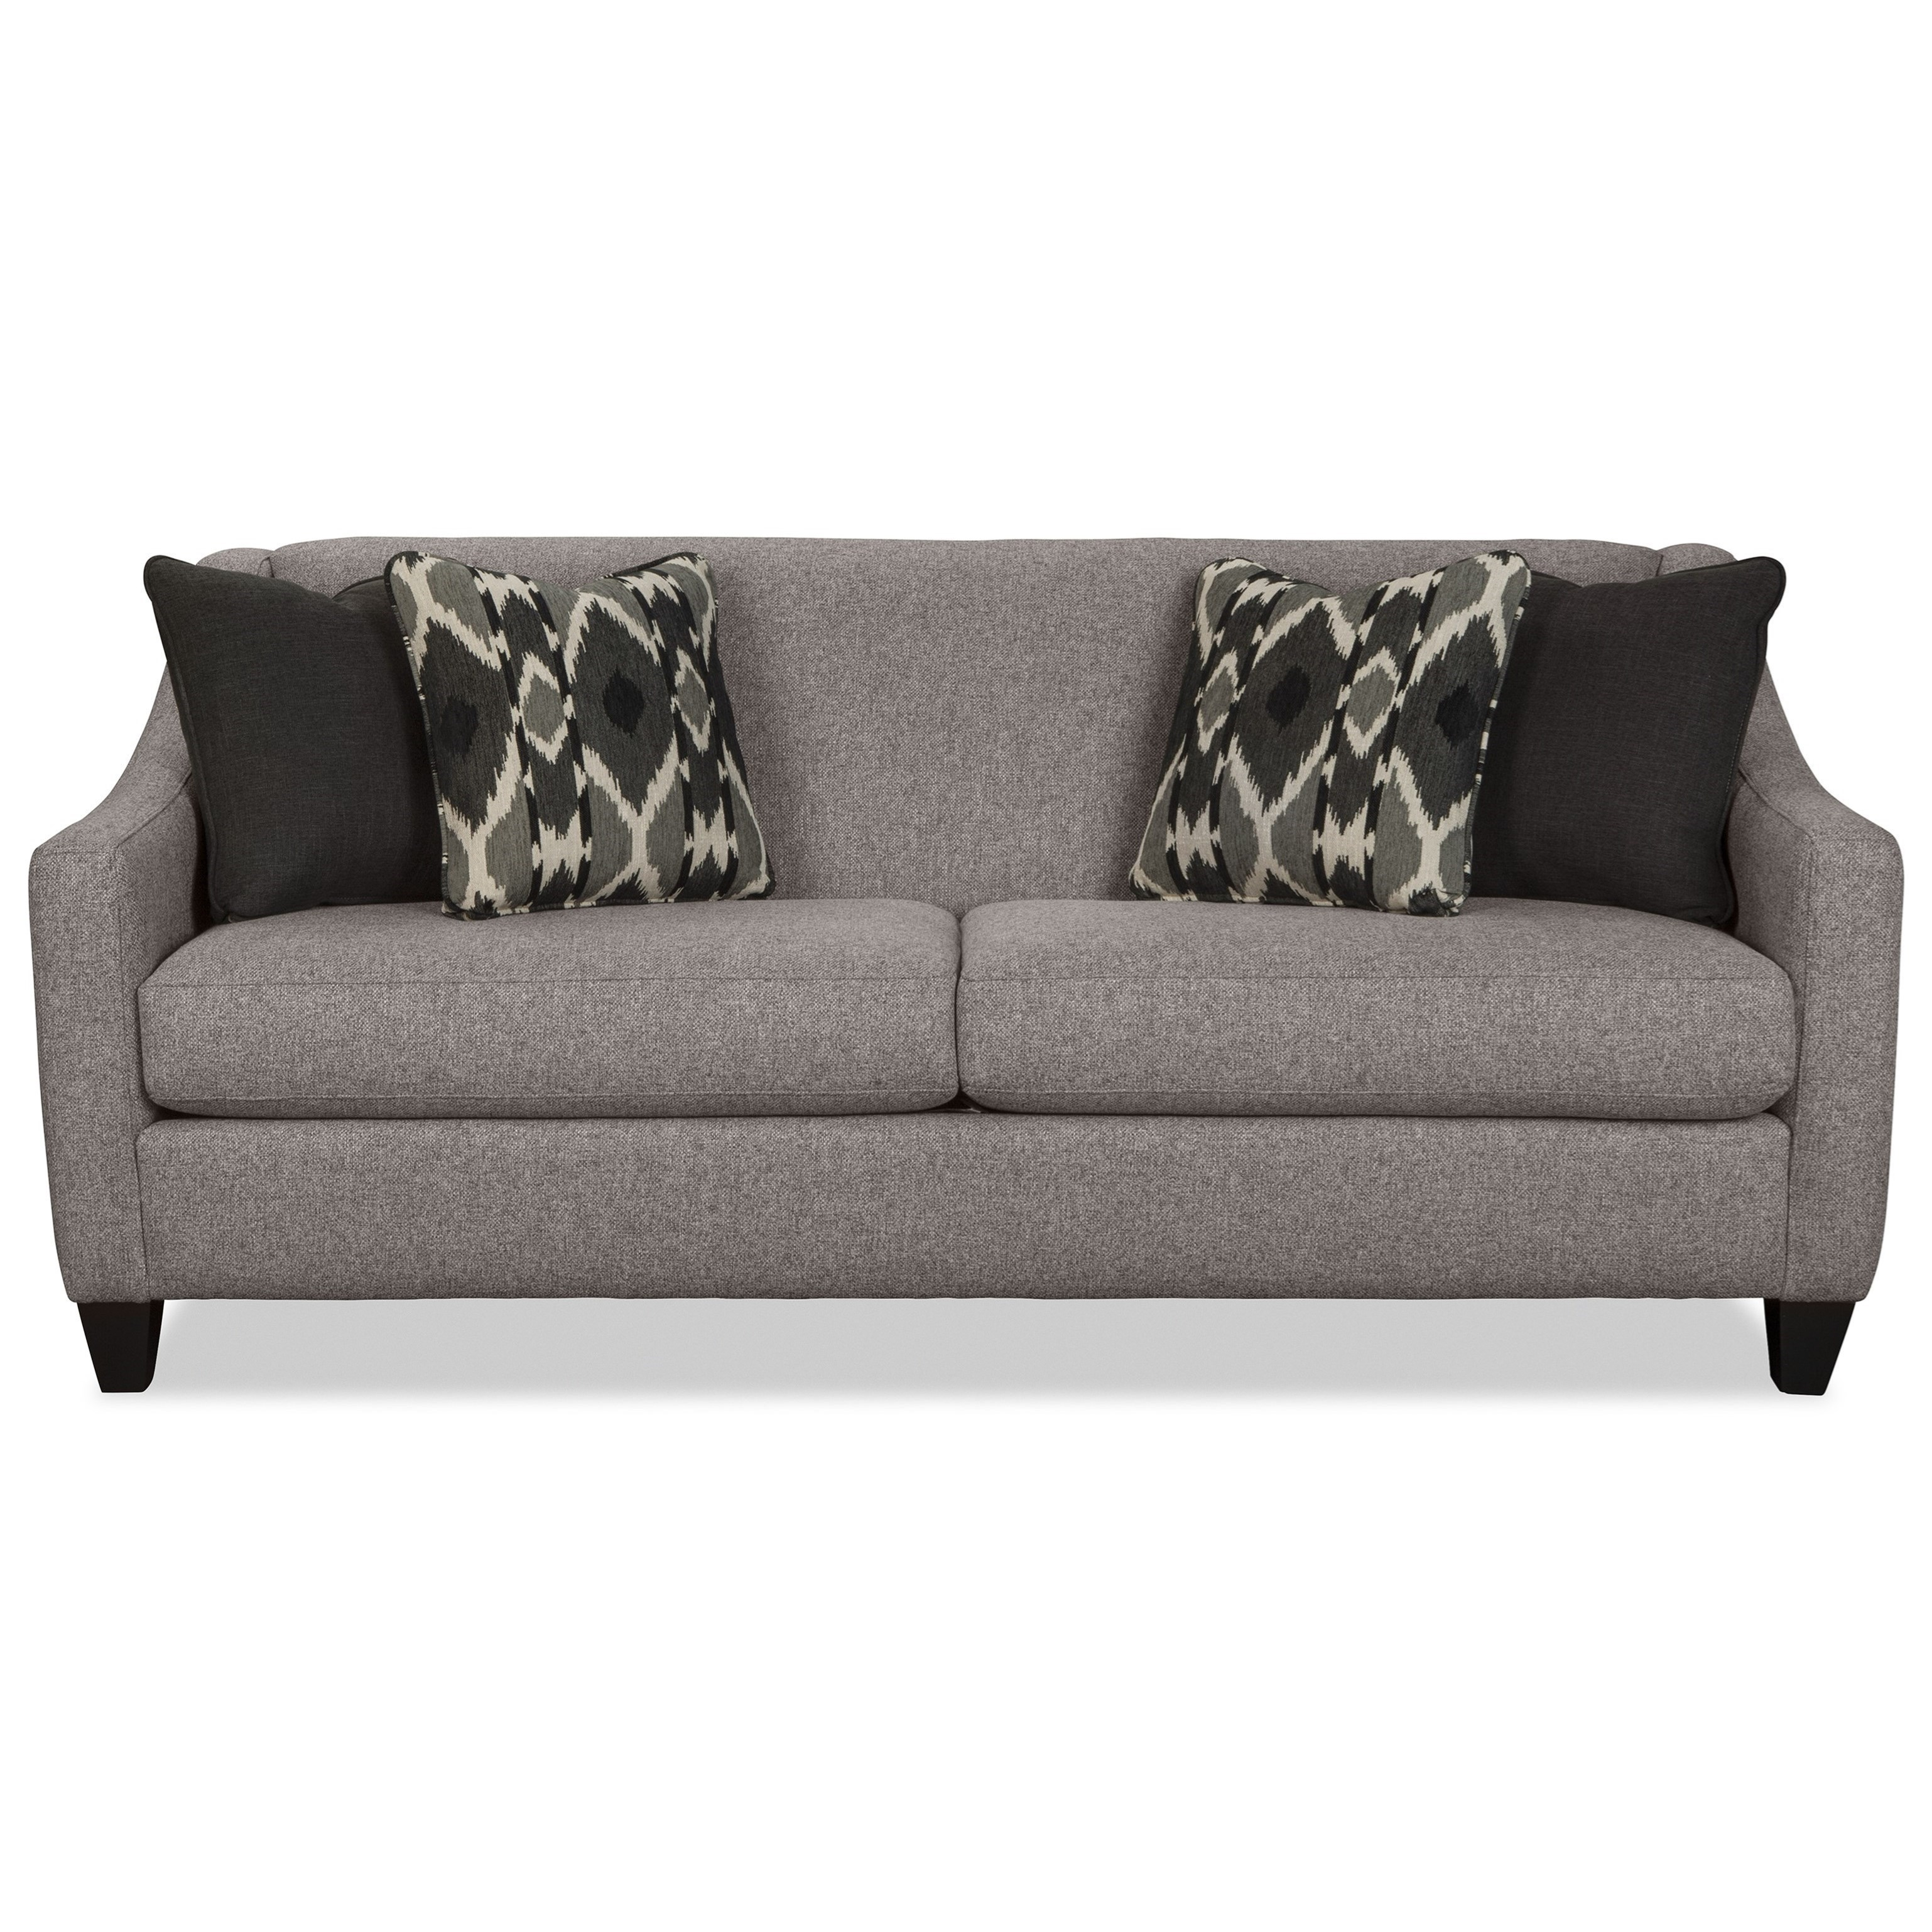 Hickorycraft 776950 Contemporary Queen Sleeper Sofa With Memory Foam  Mattress